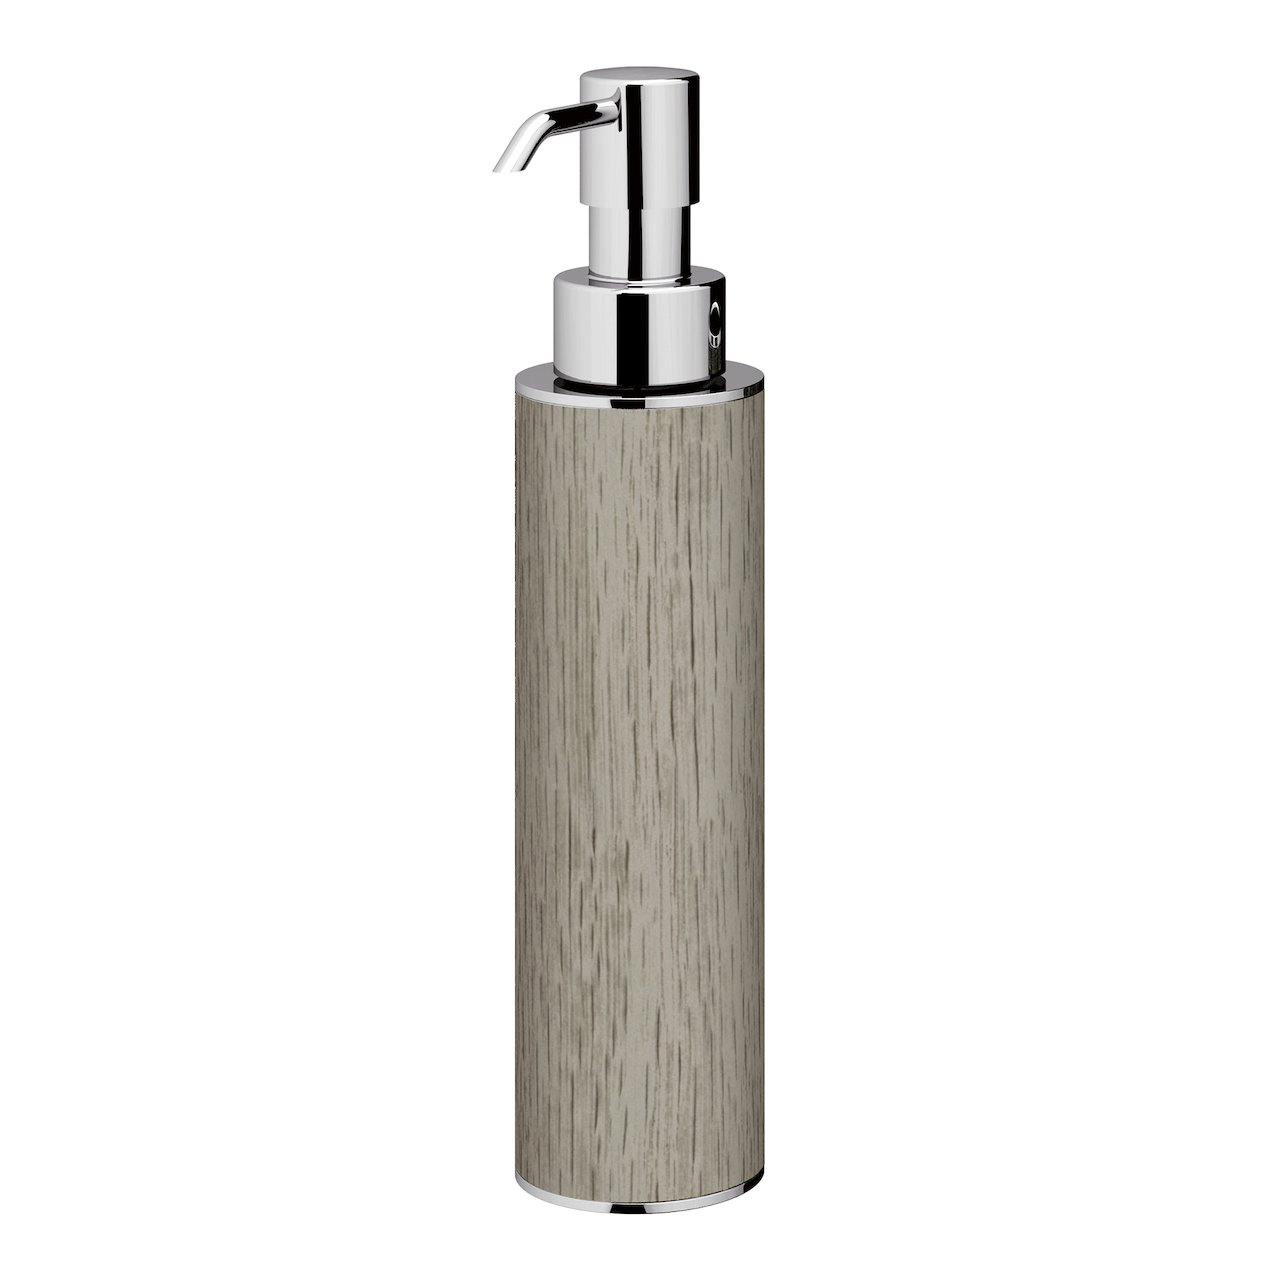 Soap dispenser Rovere